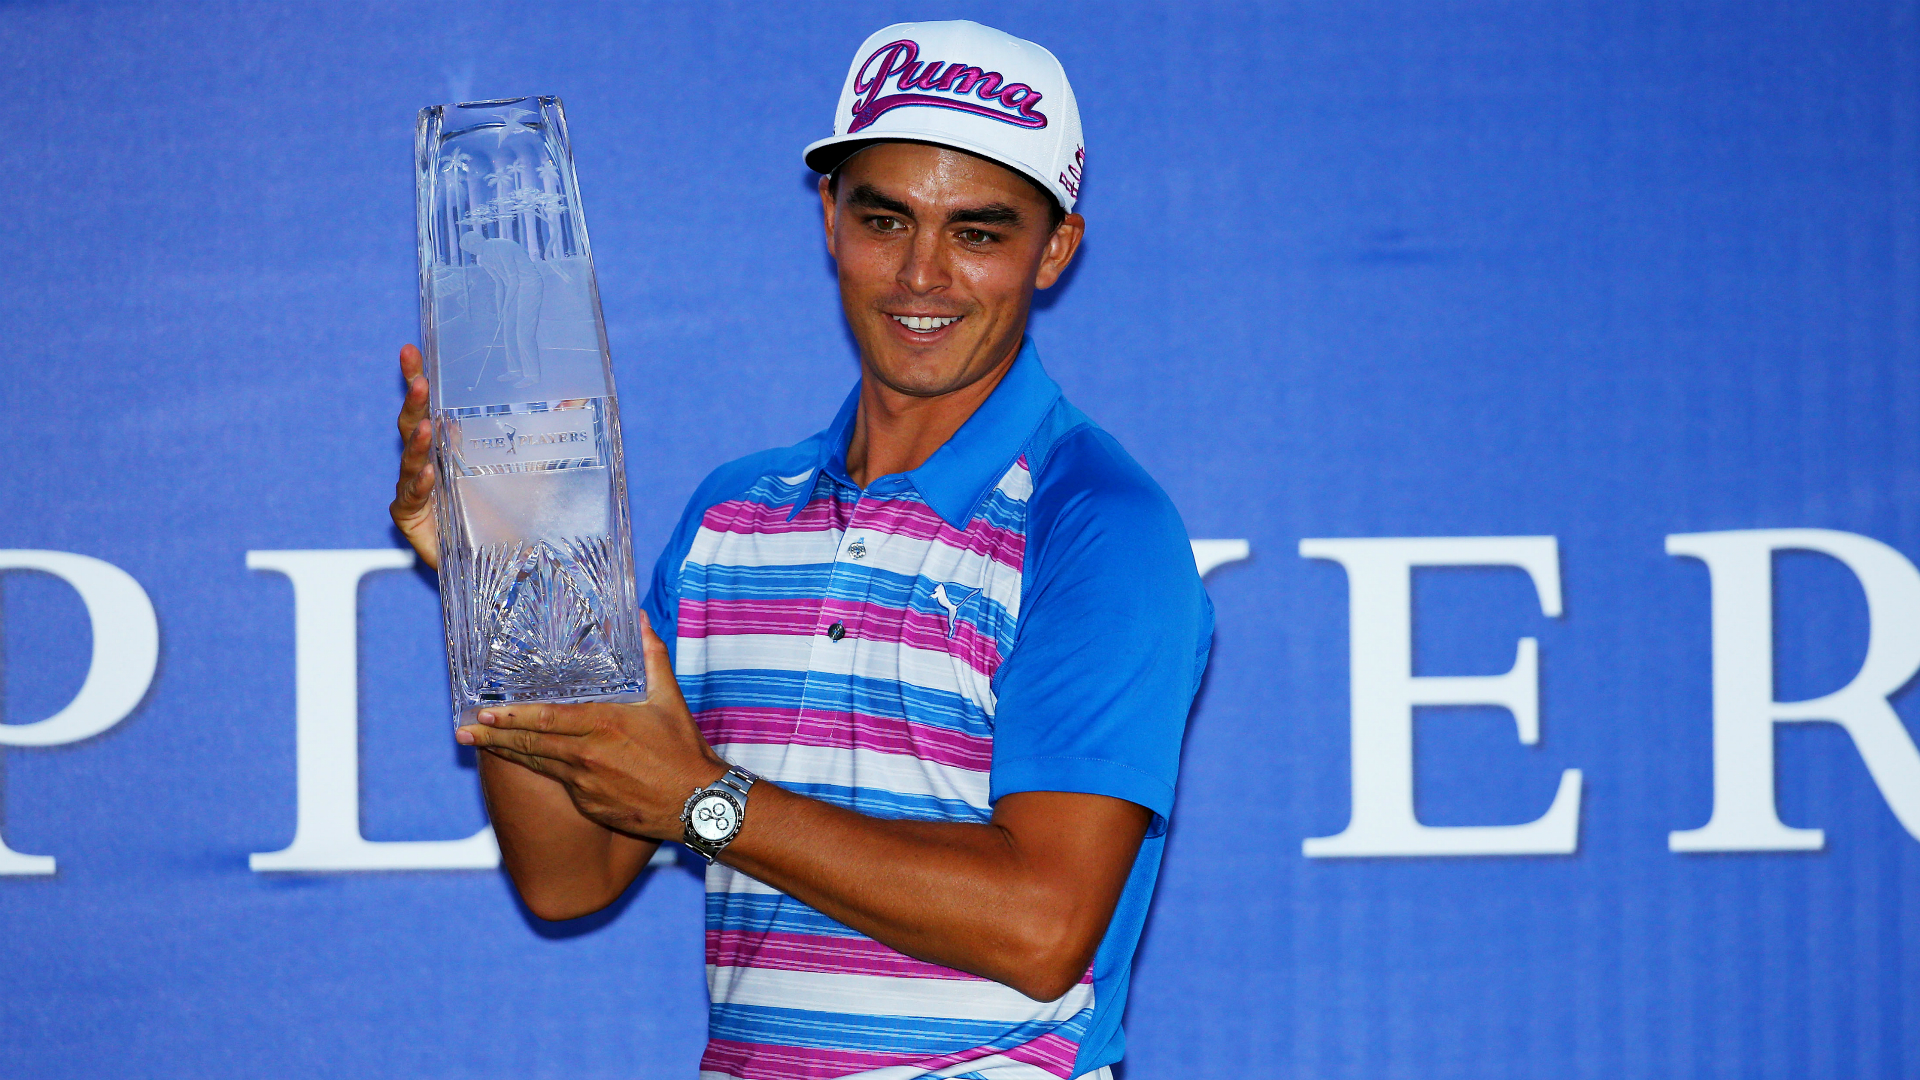 Rickie Fowler wins The Players Championship after playoff ...